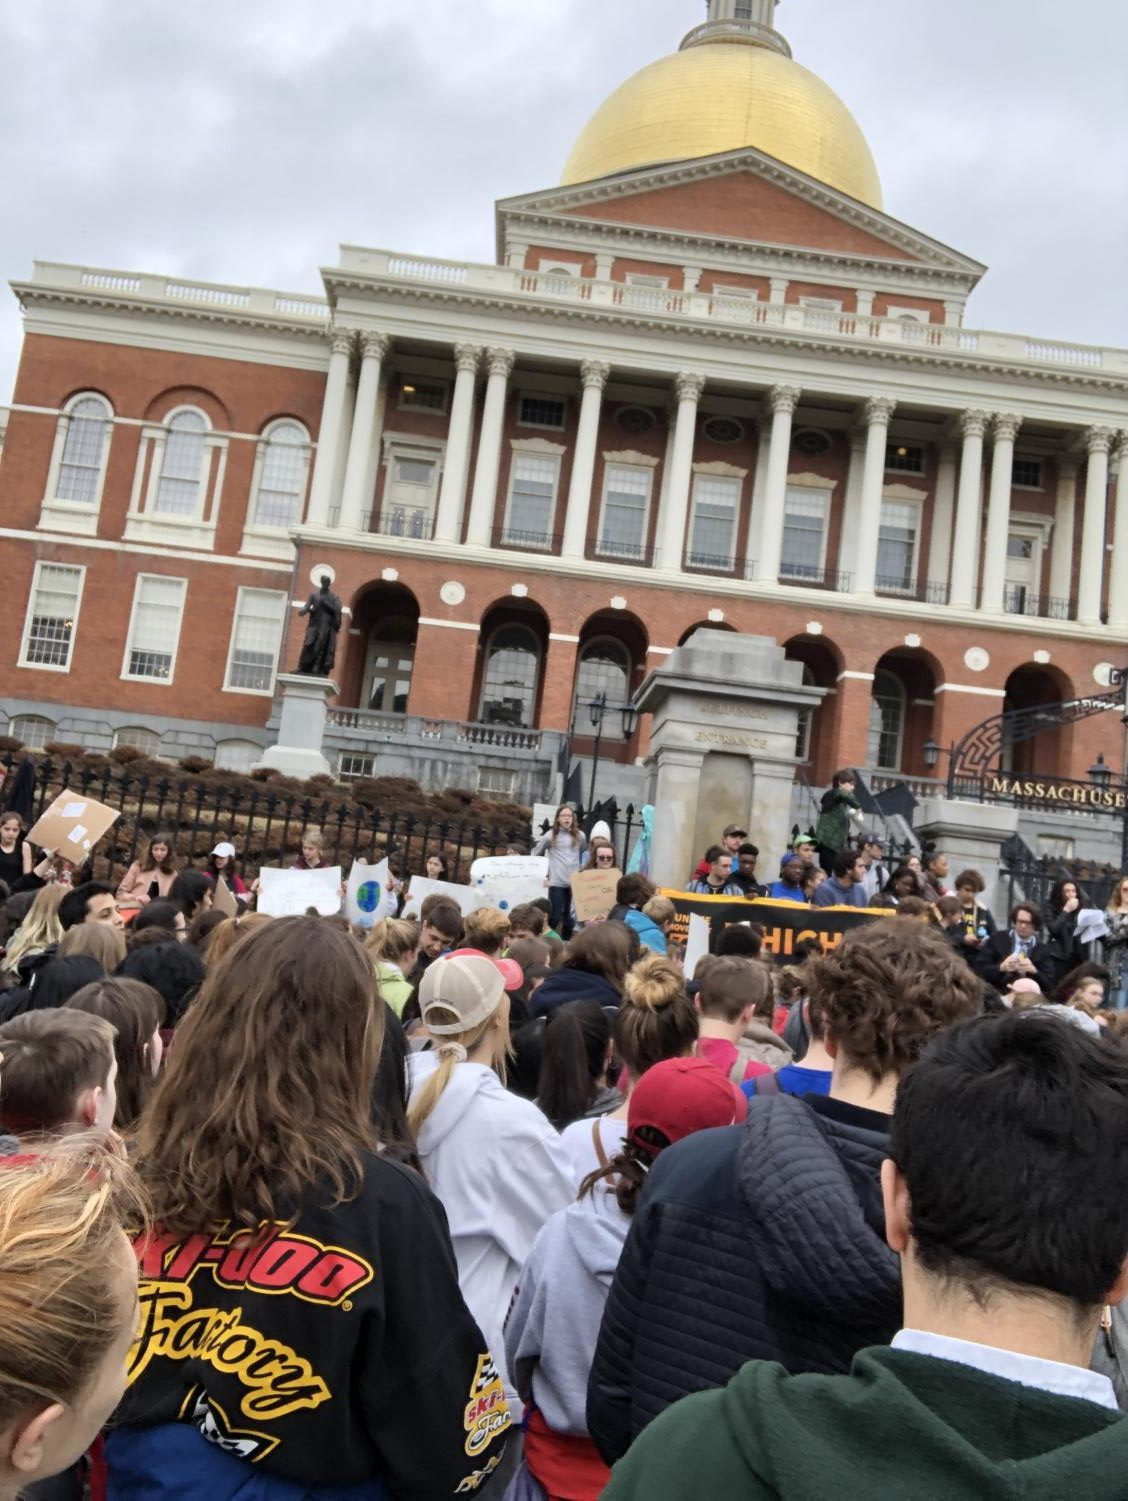 Students protest in front of the State House in Boston on March 15 to protest humans' participation in Global Climate Change.